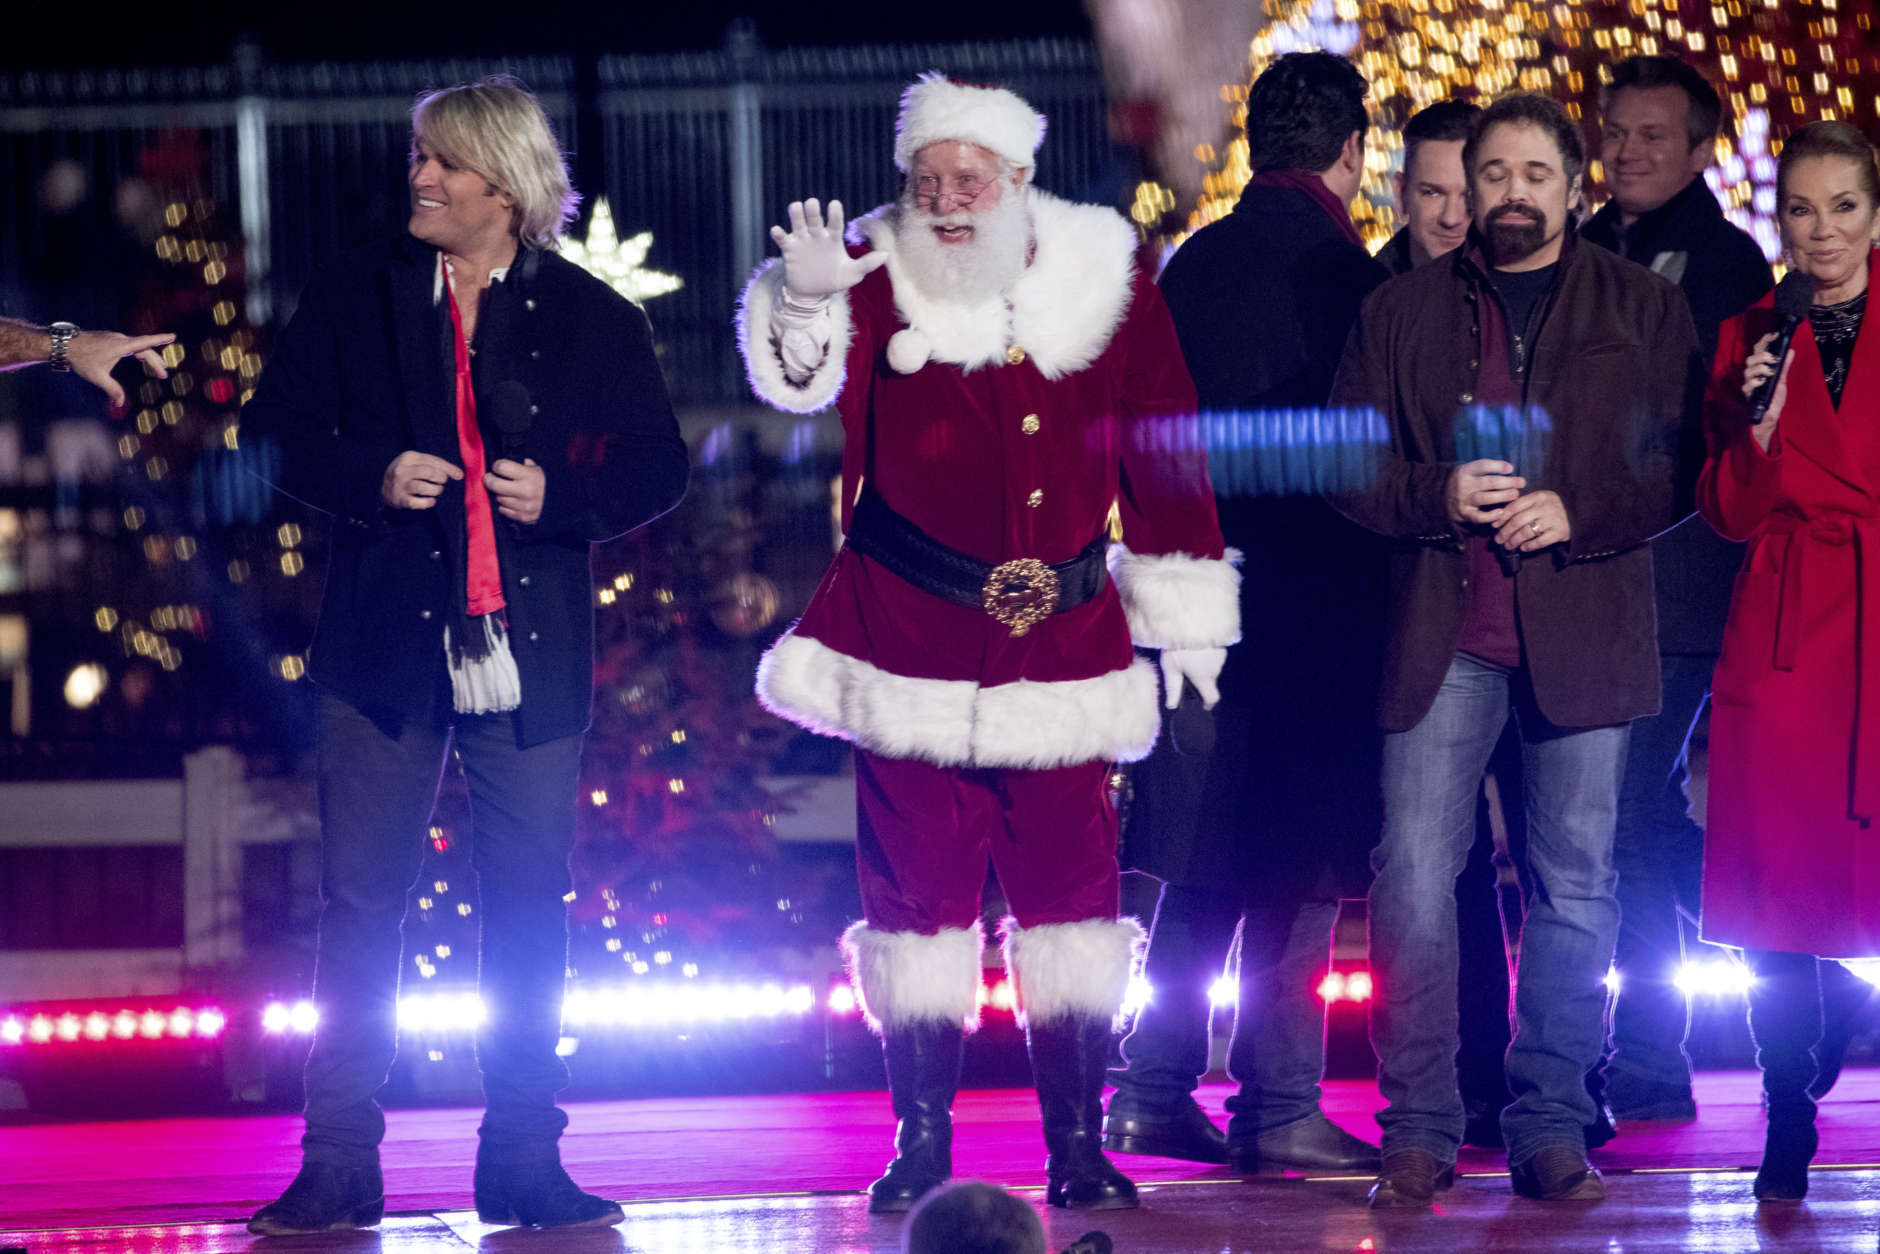 Santa Claus appears onstage along with performers at the end of the lighting ceremony for the 2017 National Christmas Tree on the Ellipse near the White House, Thursday, Nov. 30, 2017, in Washington. (AP Photo/Andrew Harnik)